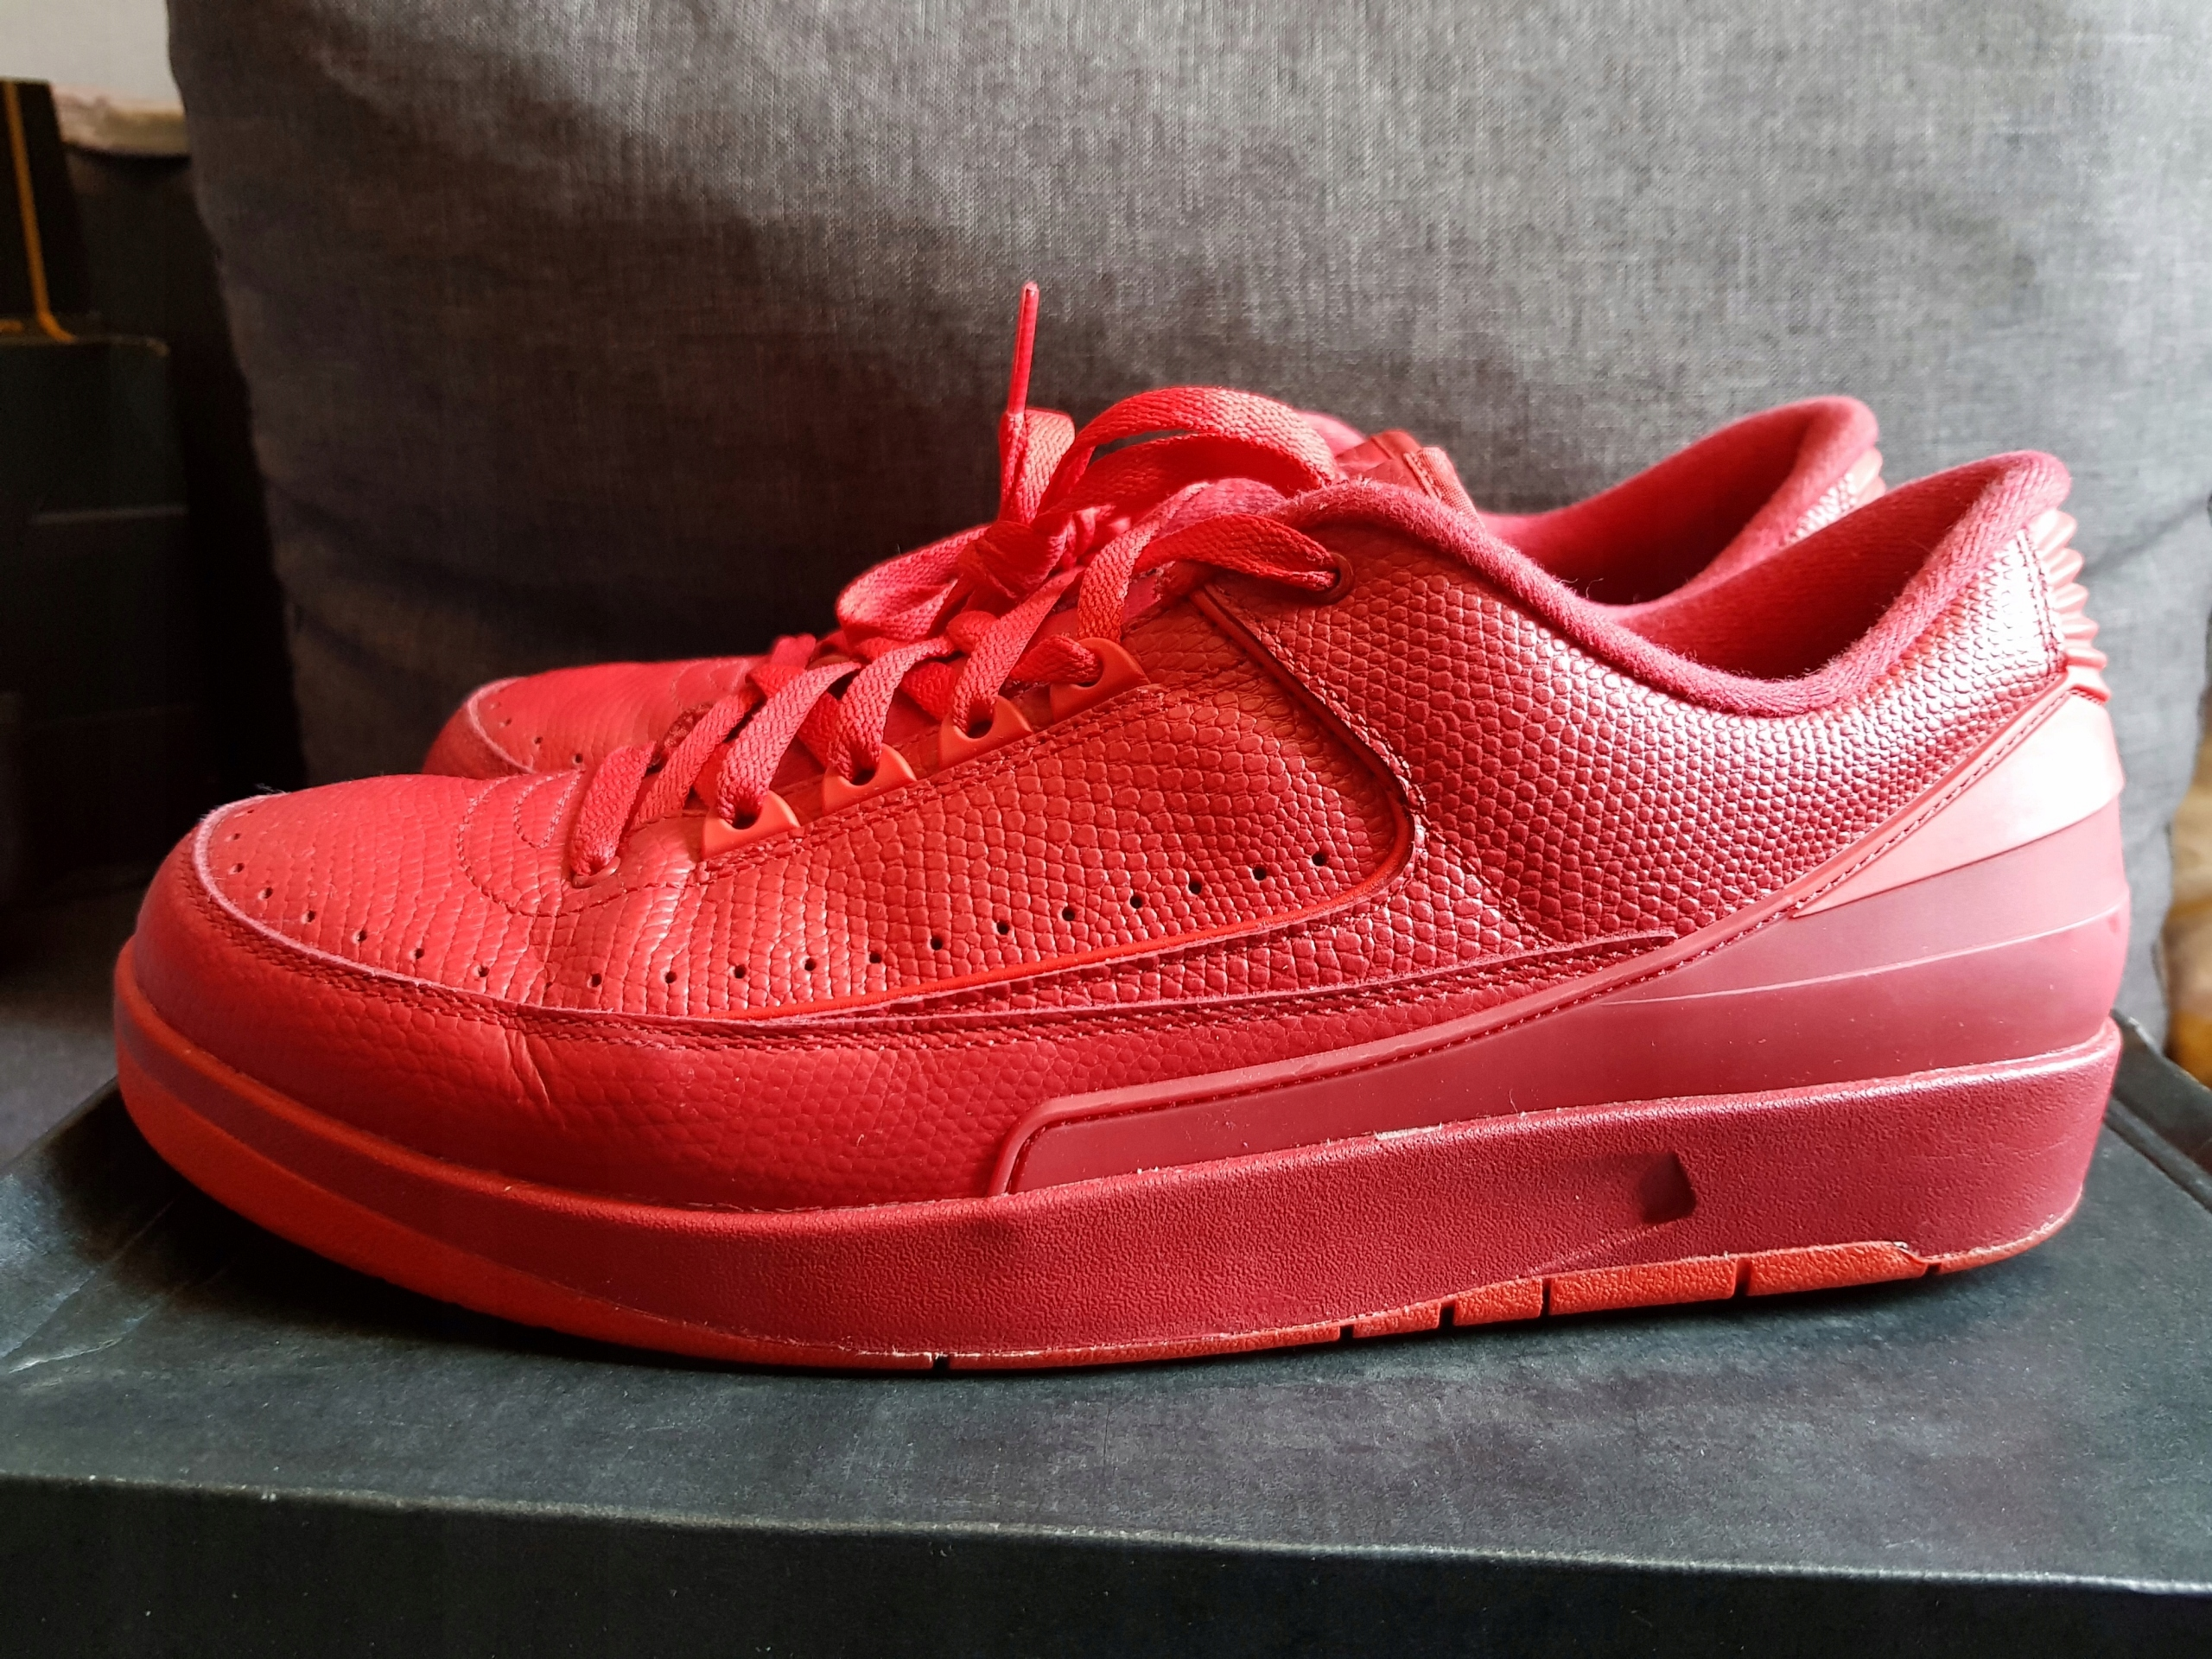 new products 2ab08 d3bf8 Buty Nike Jordan Retro 2 Low Gym red 46 30cm